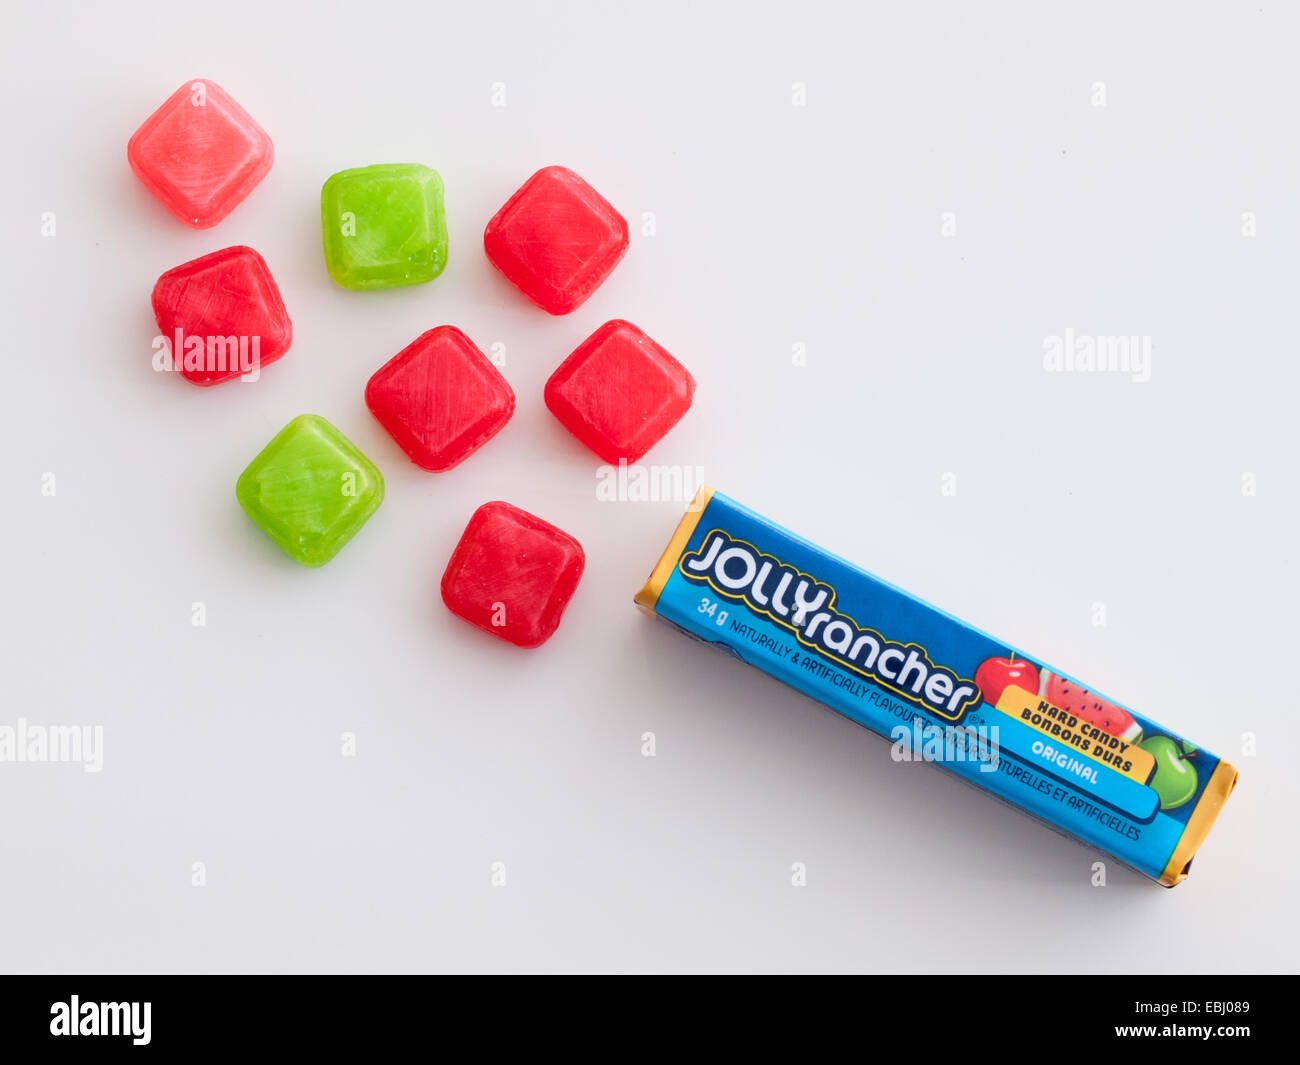 Jolly Rancher hard candy.  Original fruit flavours shown.  Manufactured by The Hershey Company. - Stock Image